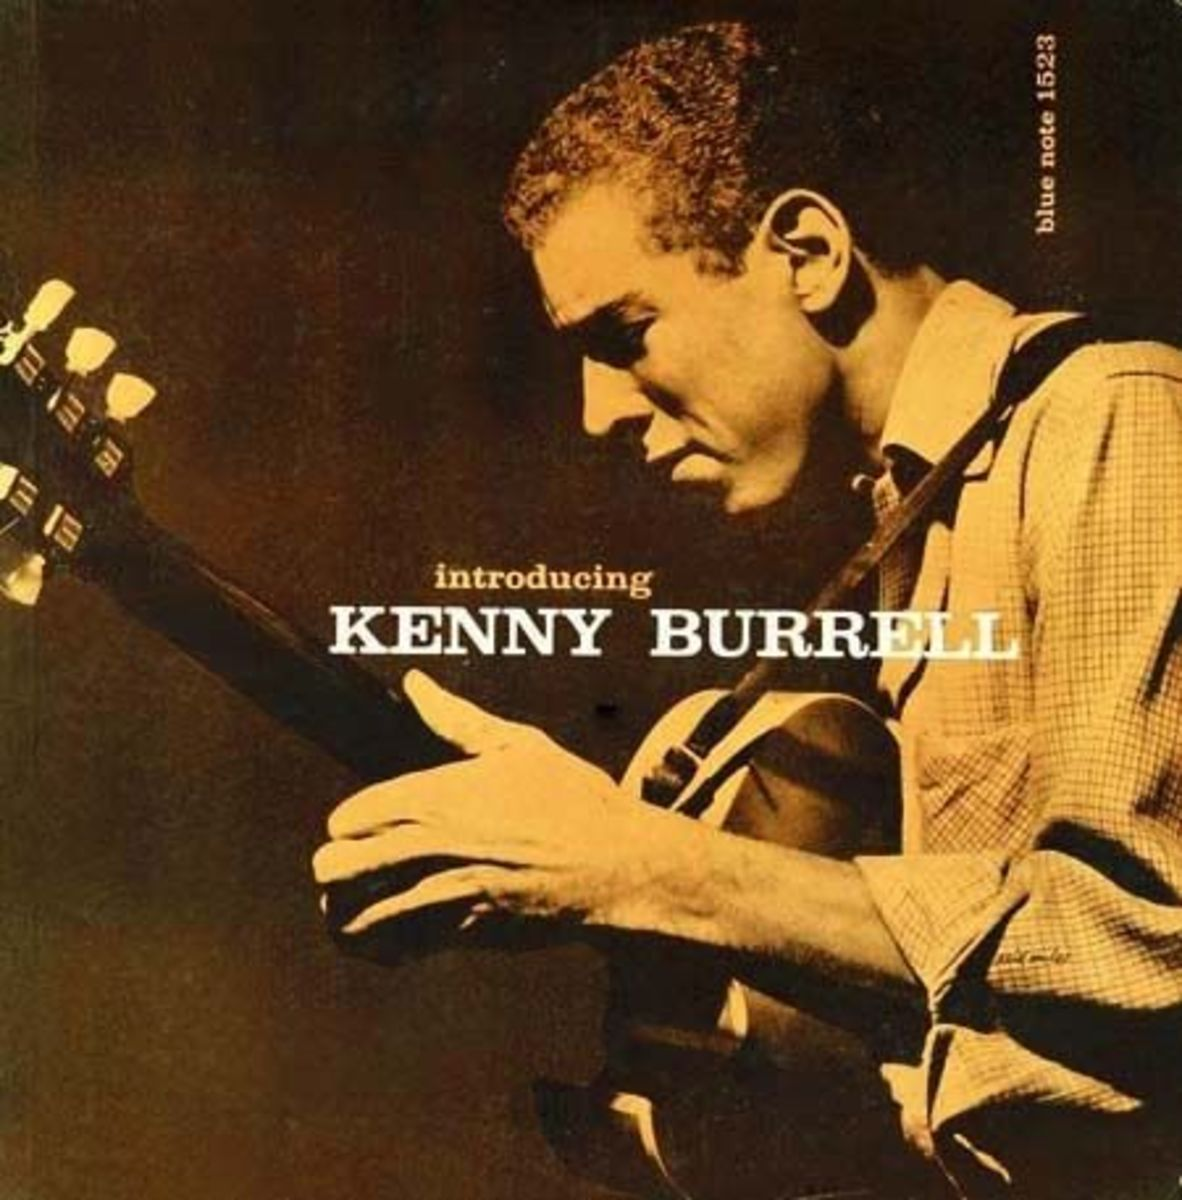 "Kenny Burrell ""Introducing Kenny Burrell"" Blue Note Records BLP 1523 12"" LP Record (1956) Album Cover Design by Reid Miles Photo by Francis Wolff"